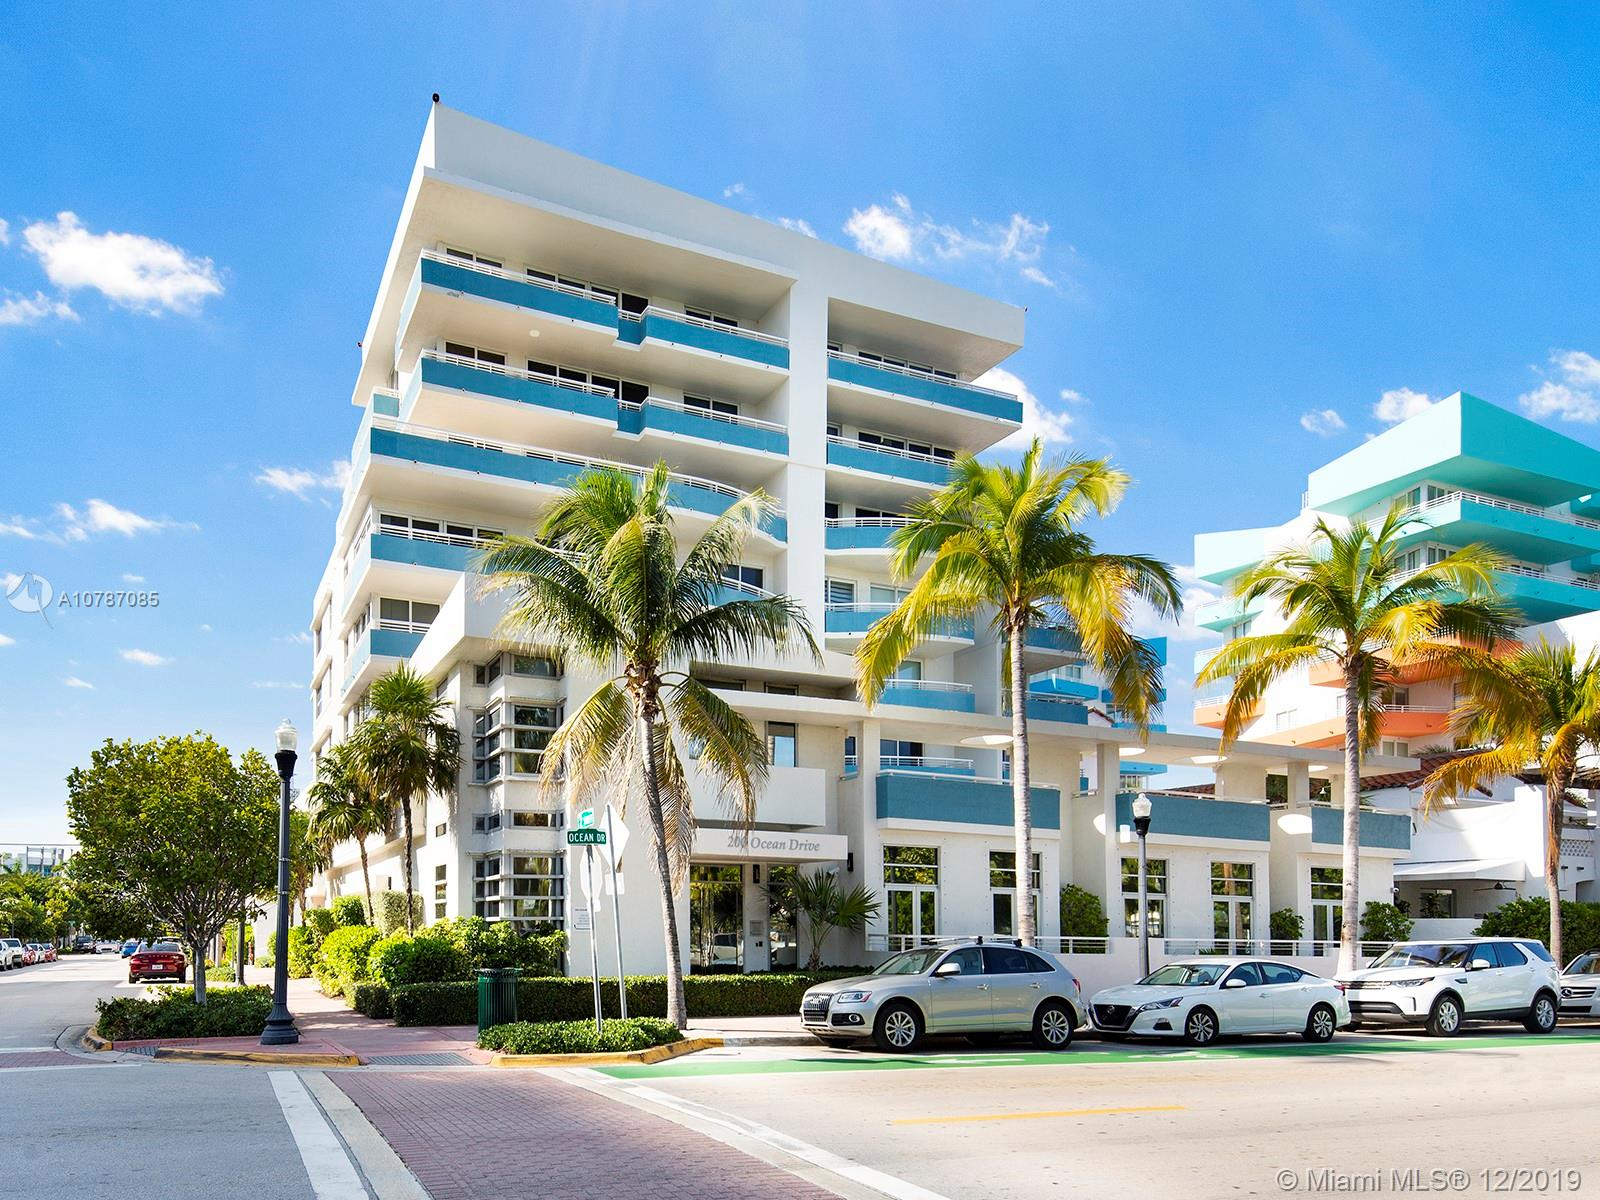 Photo of 200 Ocean Drive Condo Apt 4A/B that clicks through to the property detail page